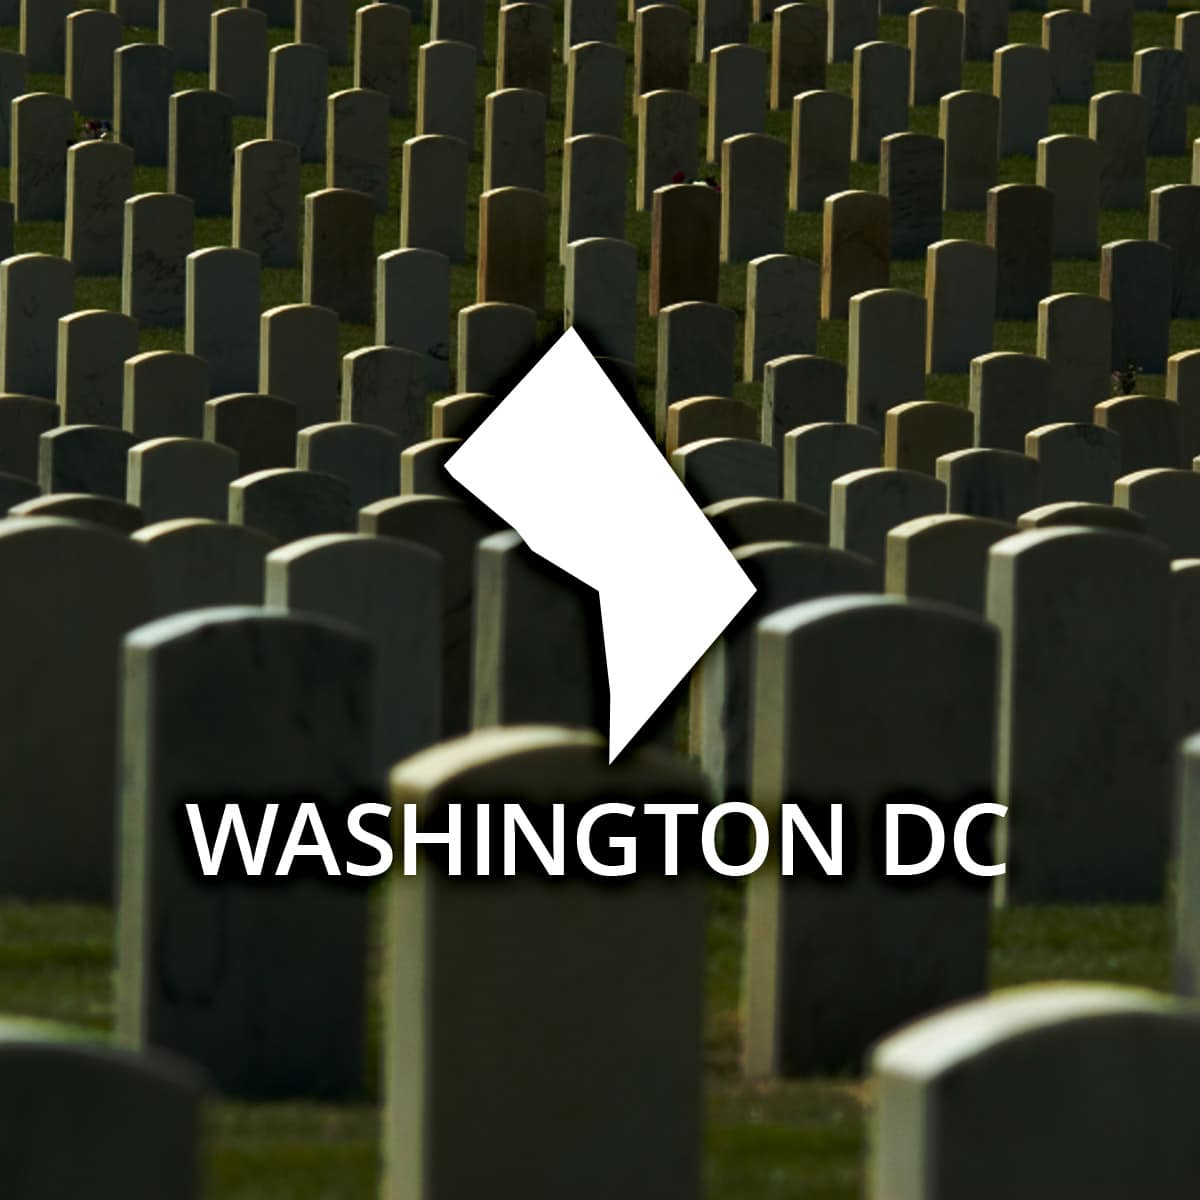 Where to Obtain a District of Columbia Death Certificate